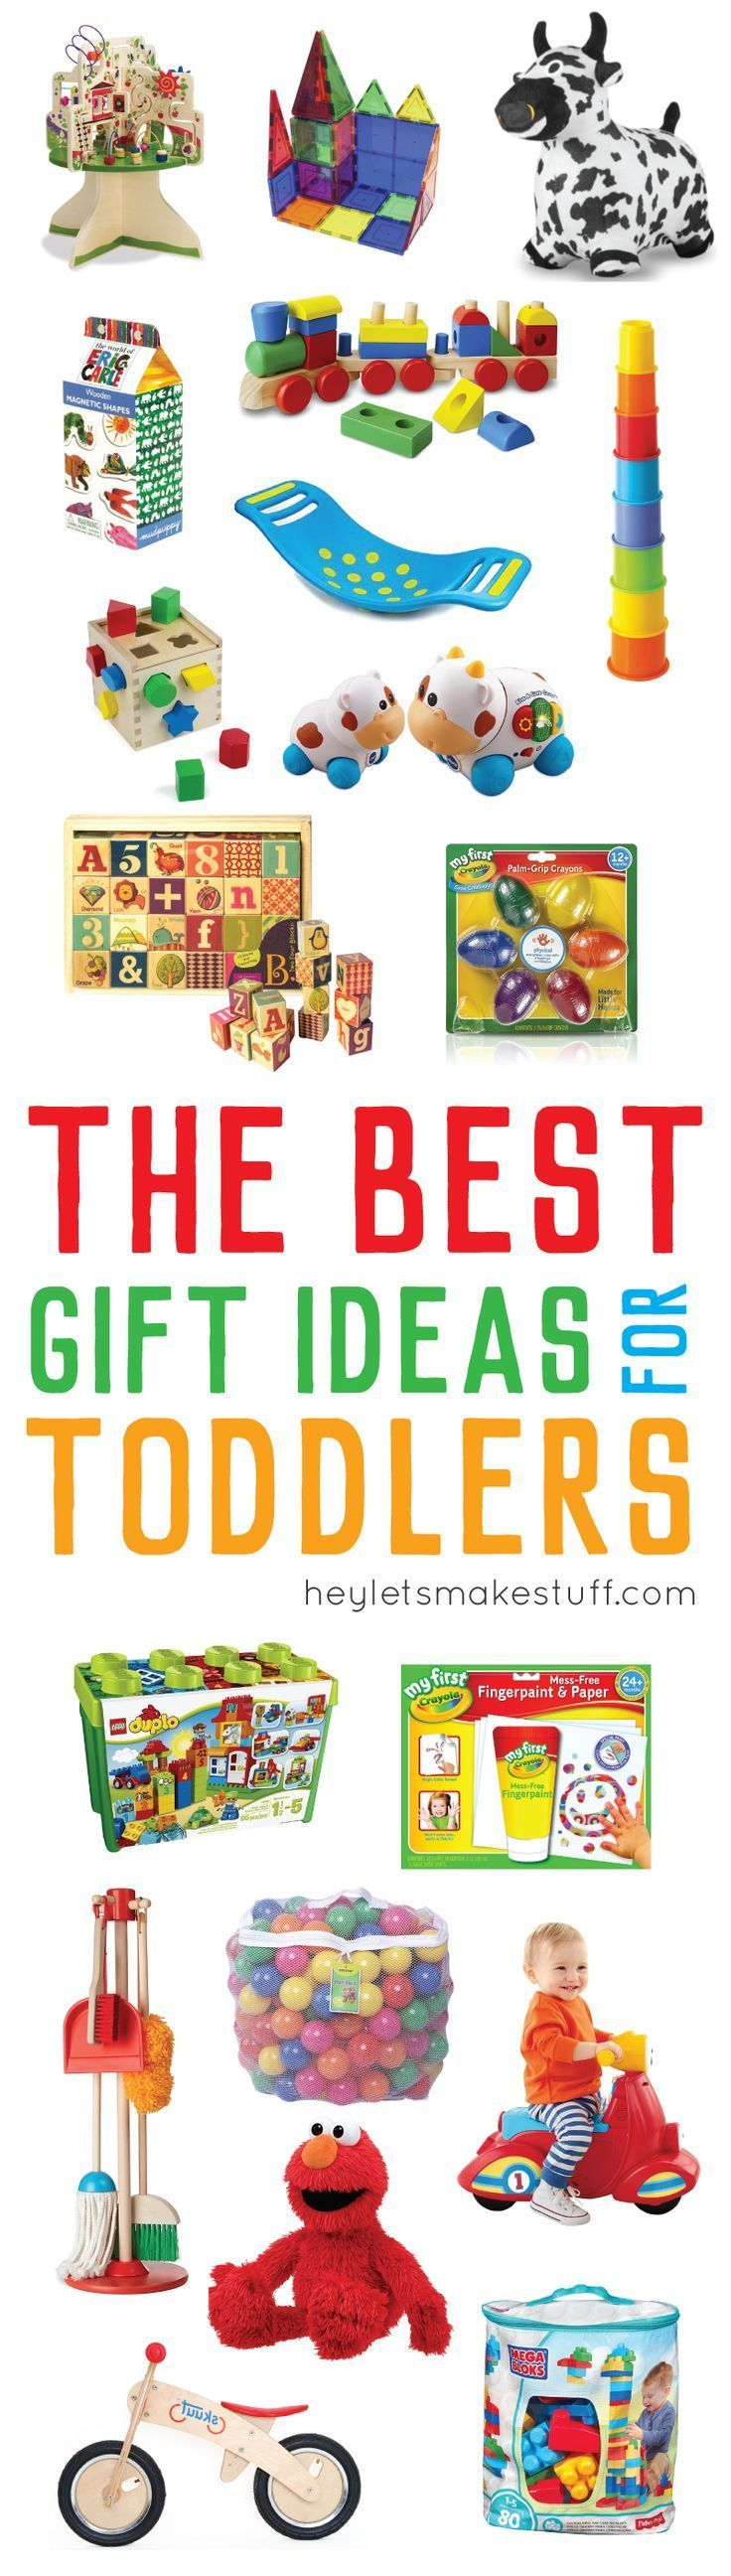 These toddler gifts are totally fun – and they're gender neutral toys, so they're great for everyone! Fun gift ideas for Christmas, birthdays, and holidays!